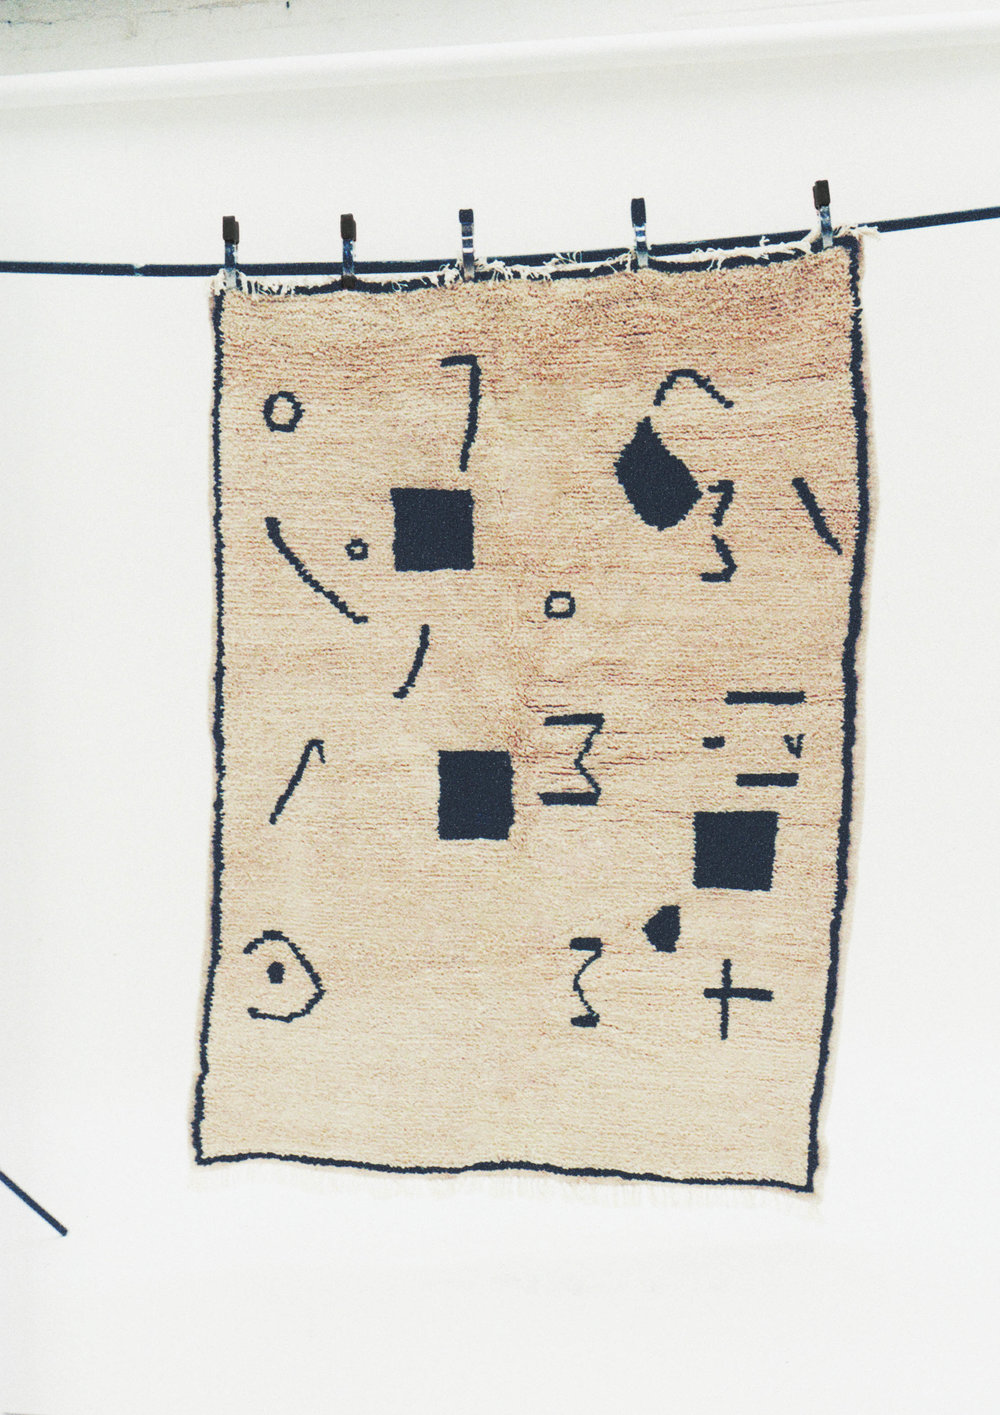 Design exercises conducted by Sabrina, enabled the weavers to create original and contemporary designs, which were transformed into rugs like this one.